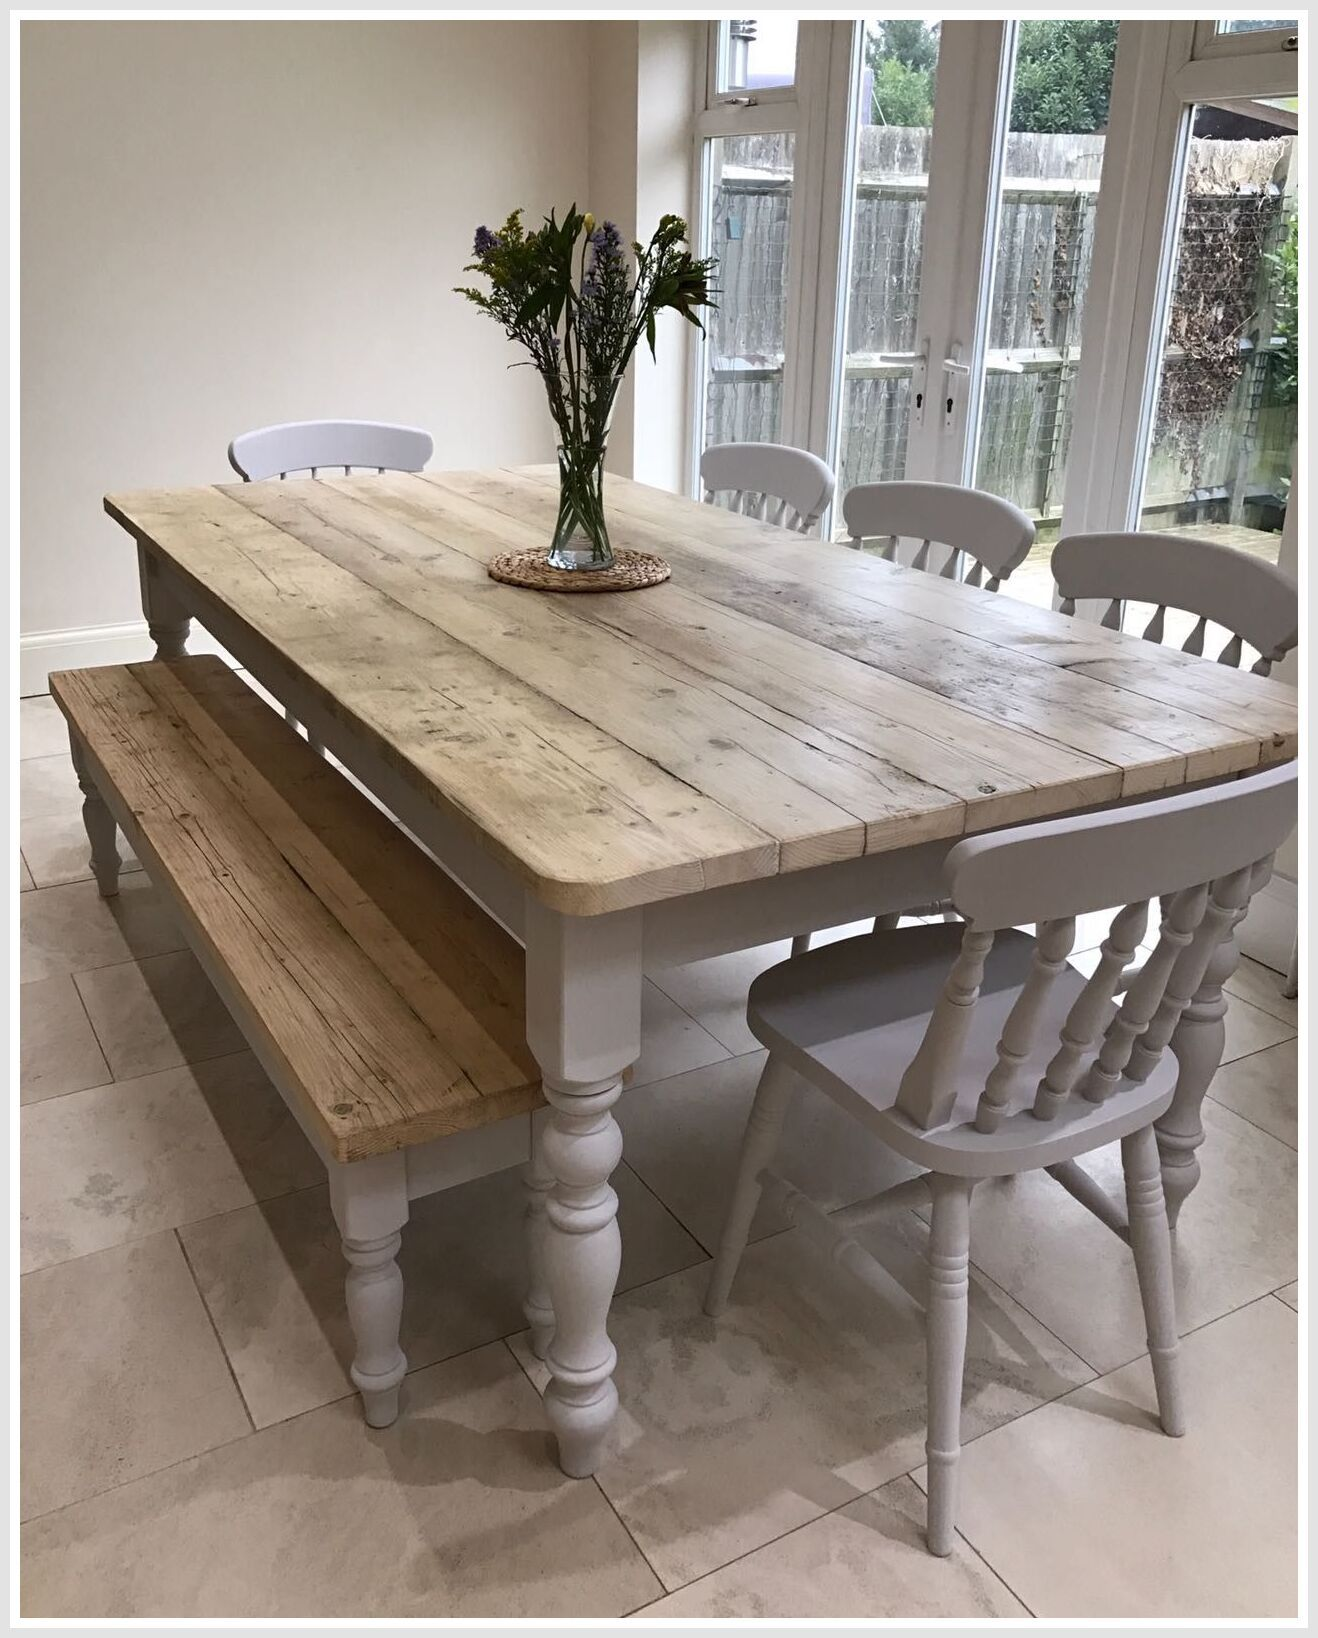 91 Reference Of Small Rustic Kitchen Table With Bench In 2020 Farmhouse Style Kitchen Table Farmhouse Style Dining Room Farmhouse Dining Room Table